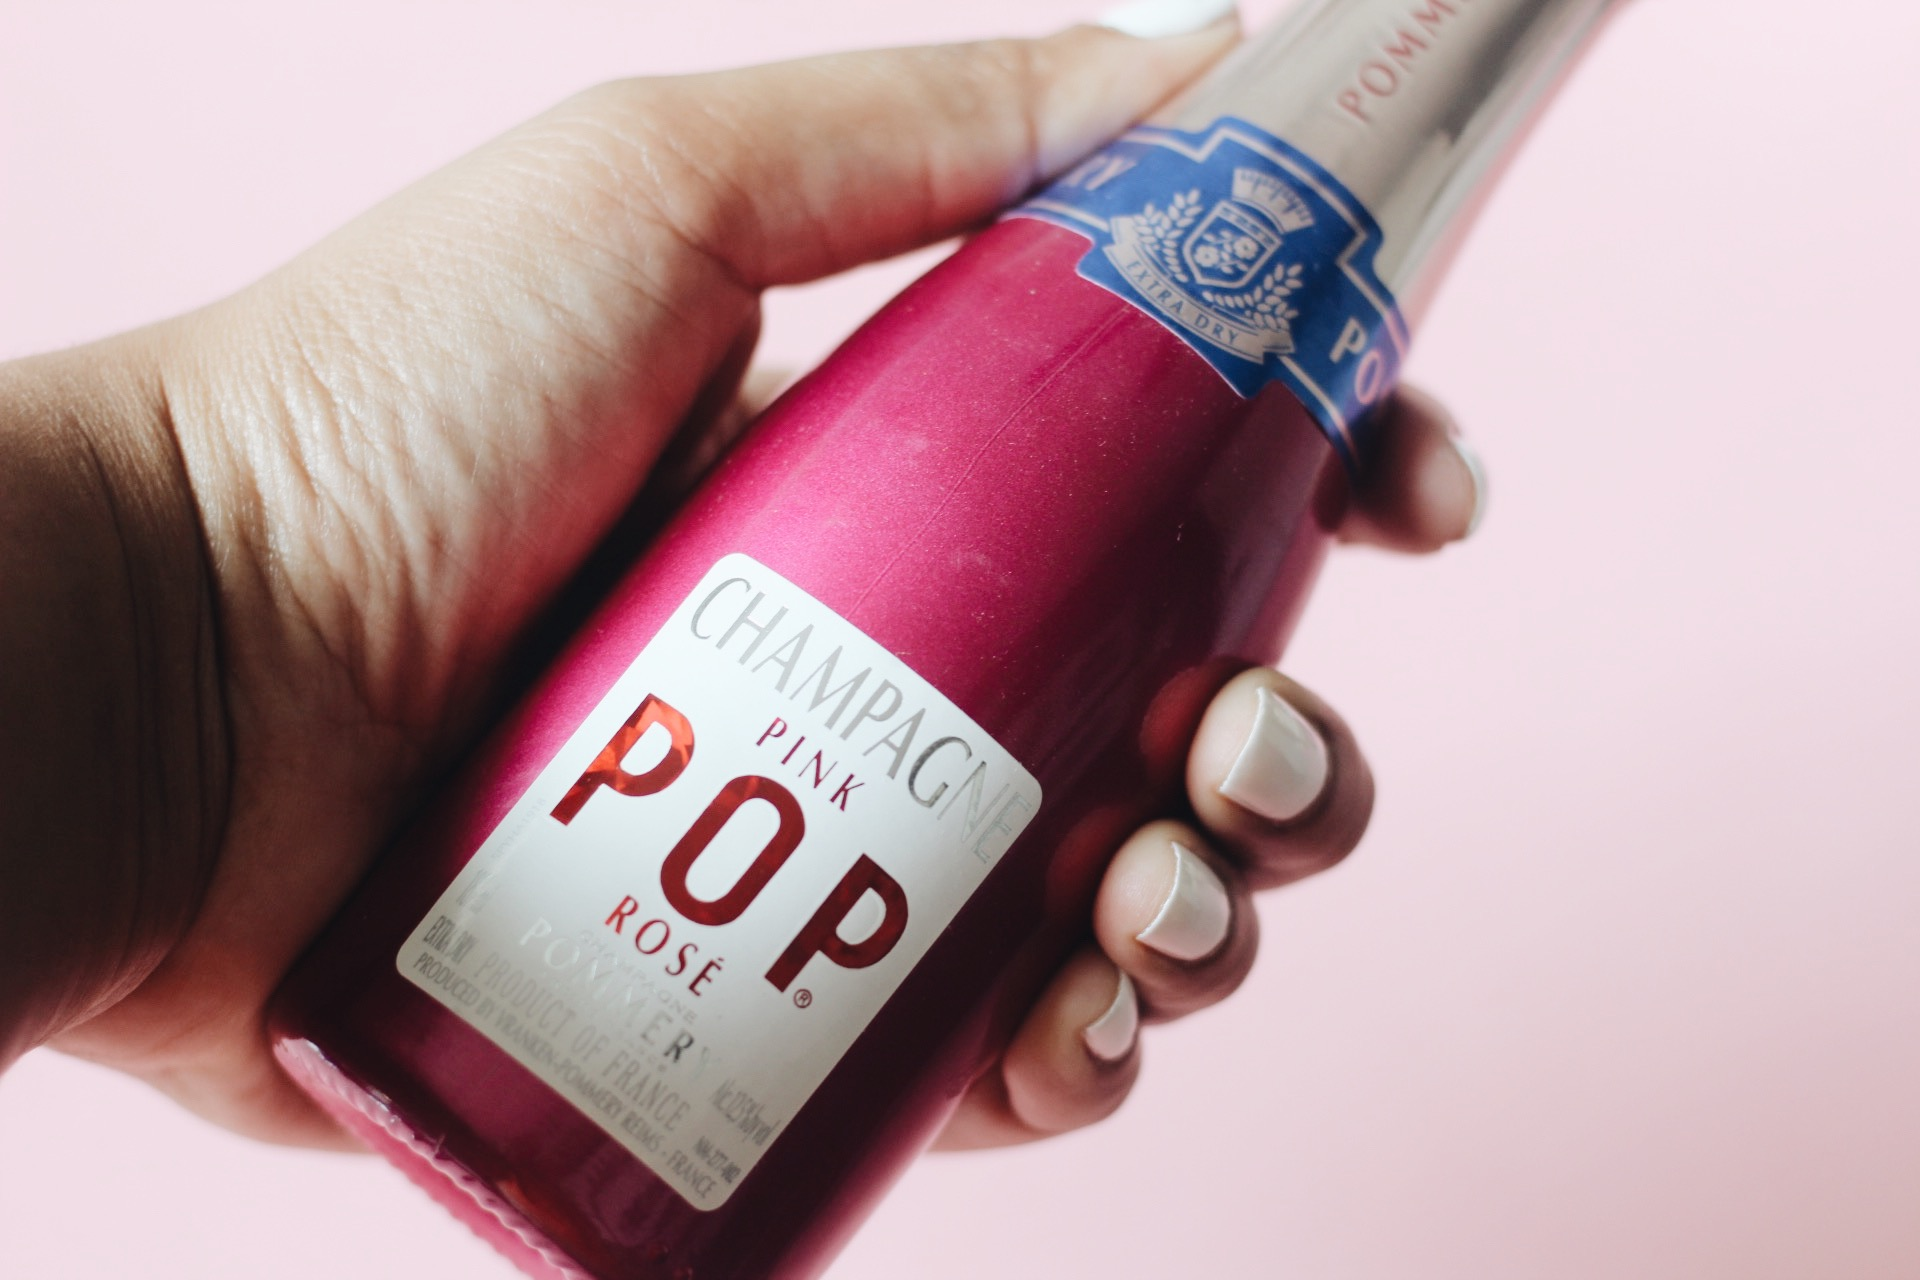 How-I-asked-my-bridesmaids-etsy-champagne-pop-lolli-and-pops-sugarfina-paper-source-2.JPG